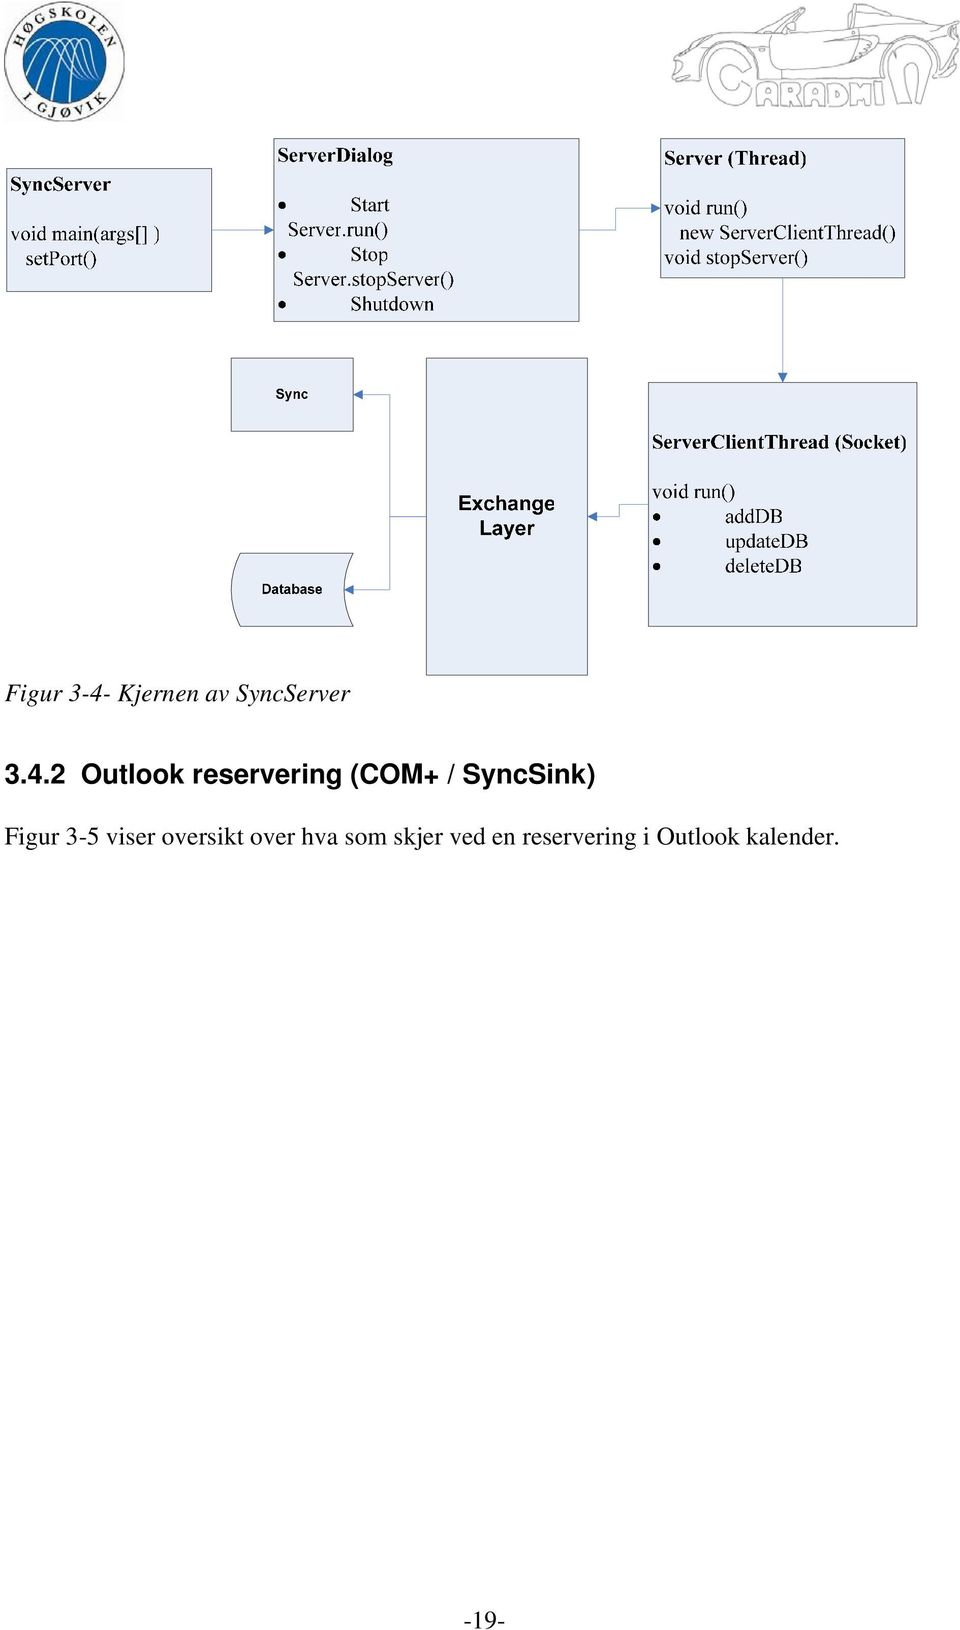 2 Outlook reservering (COM+ / SyncSink)